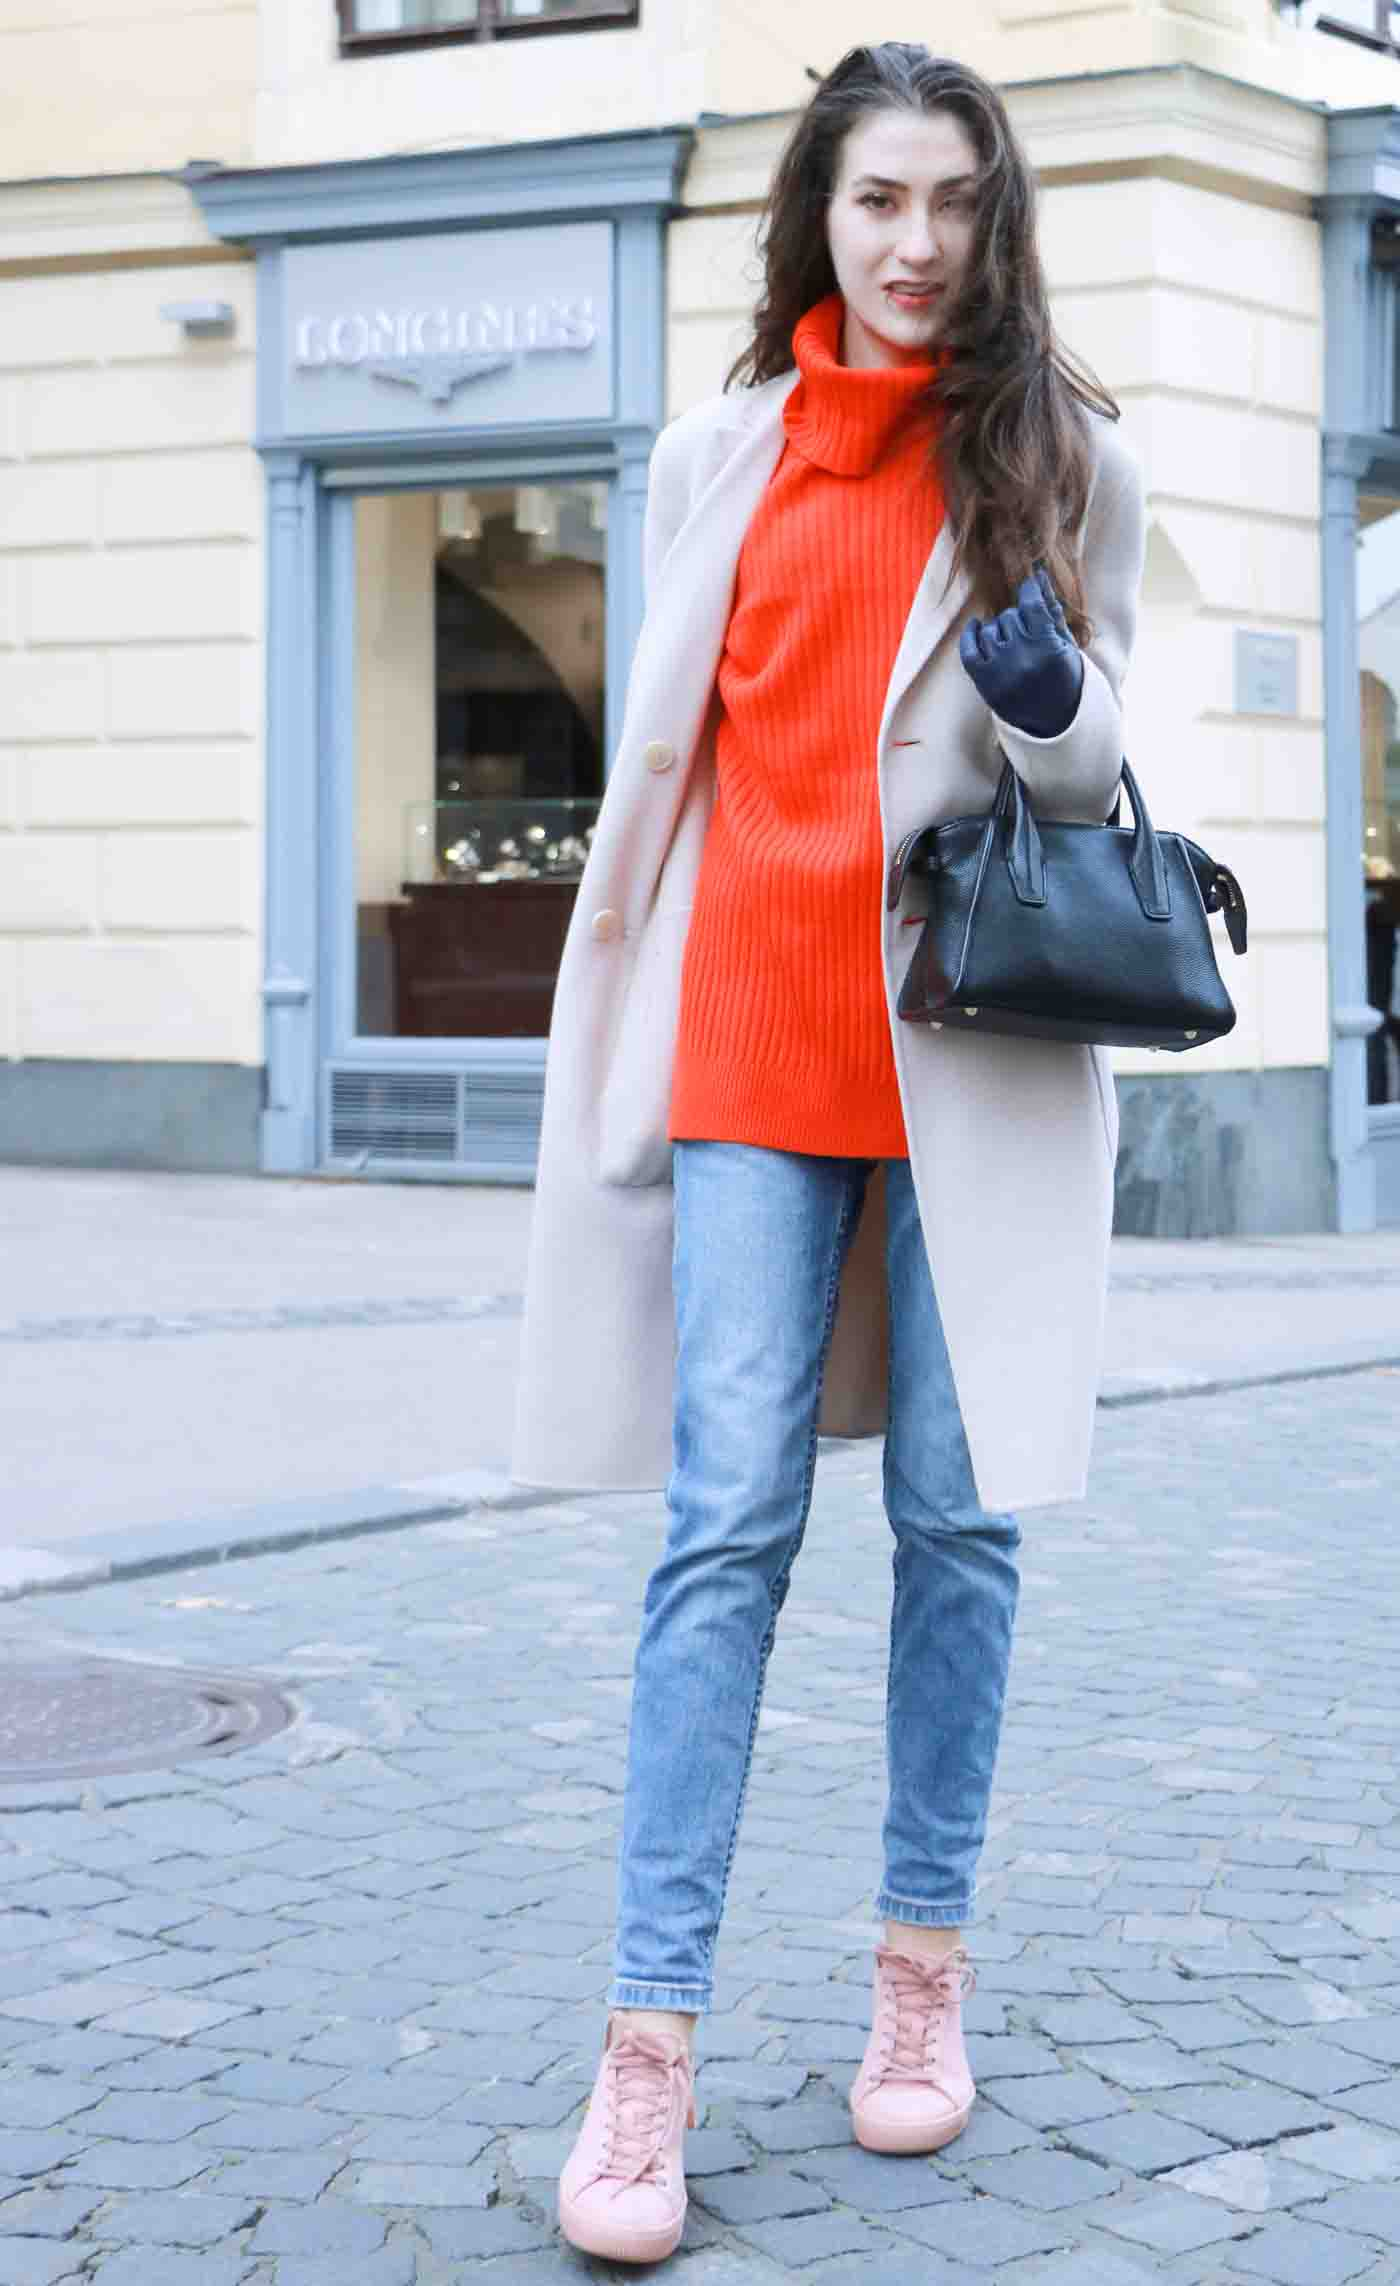 Fashion Blogger Veronika Lipar of Brunette from Wall dressed in red Ganni turtleneck sweater, light blue jeans, pink Puma sneakers and Weekend Maxmara white princess coat